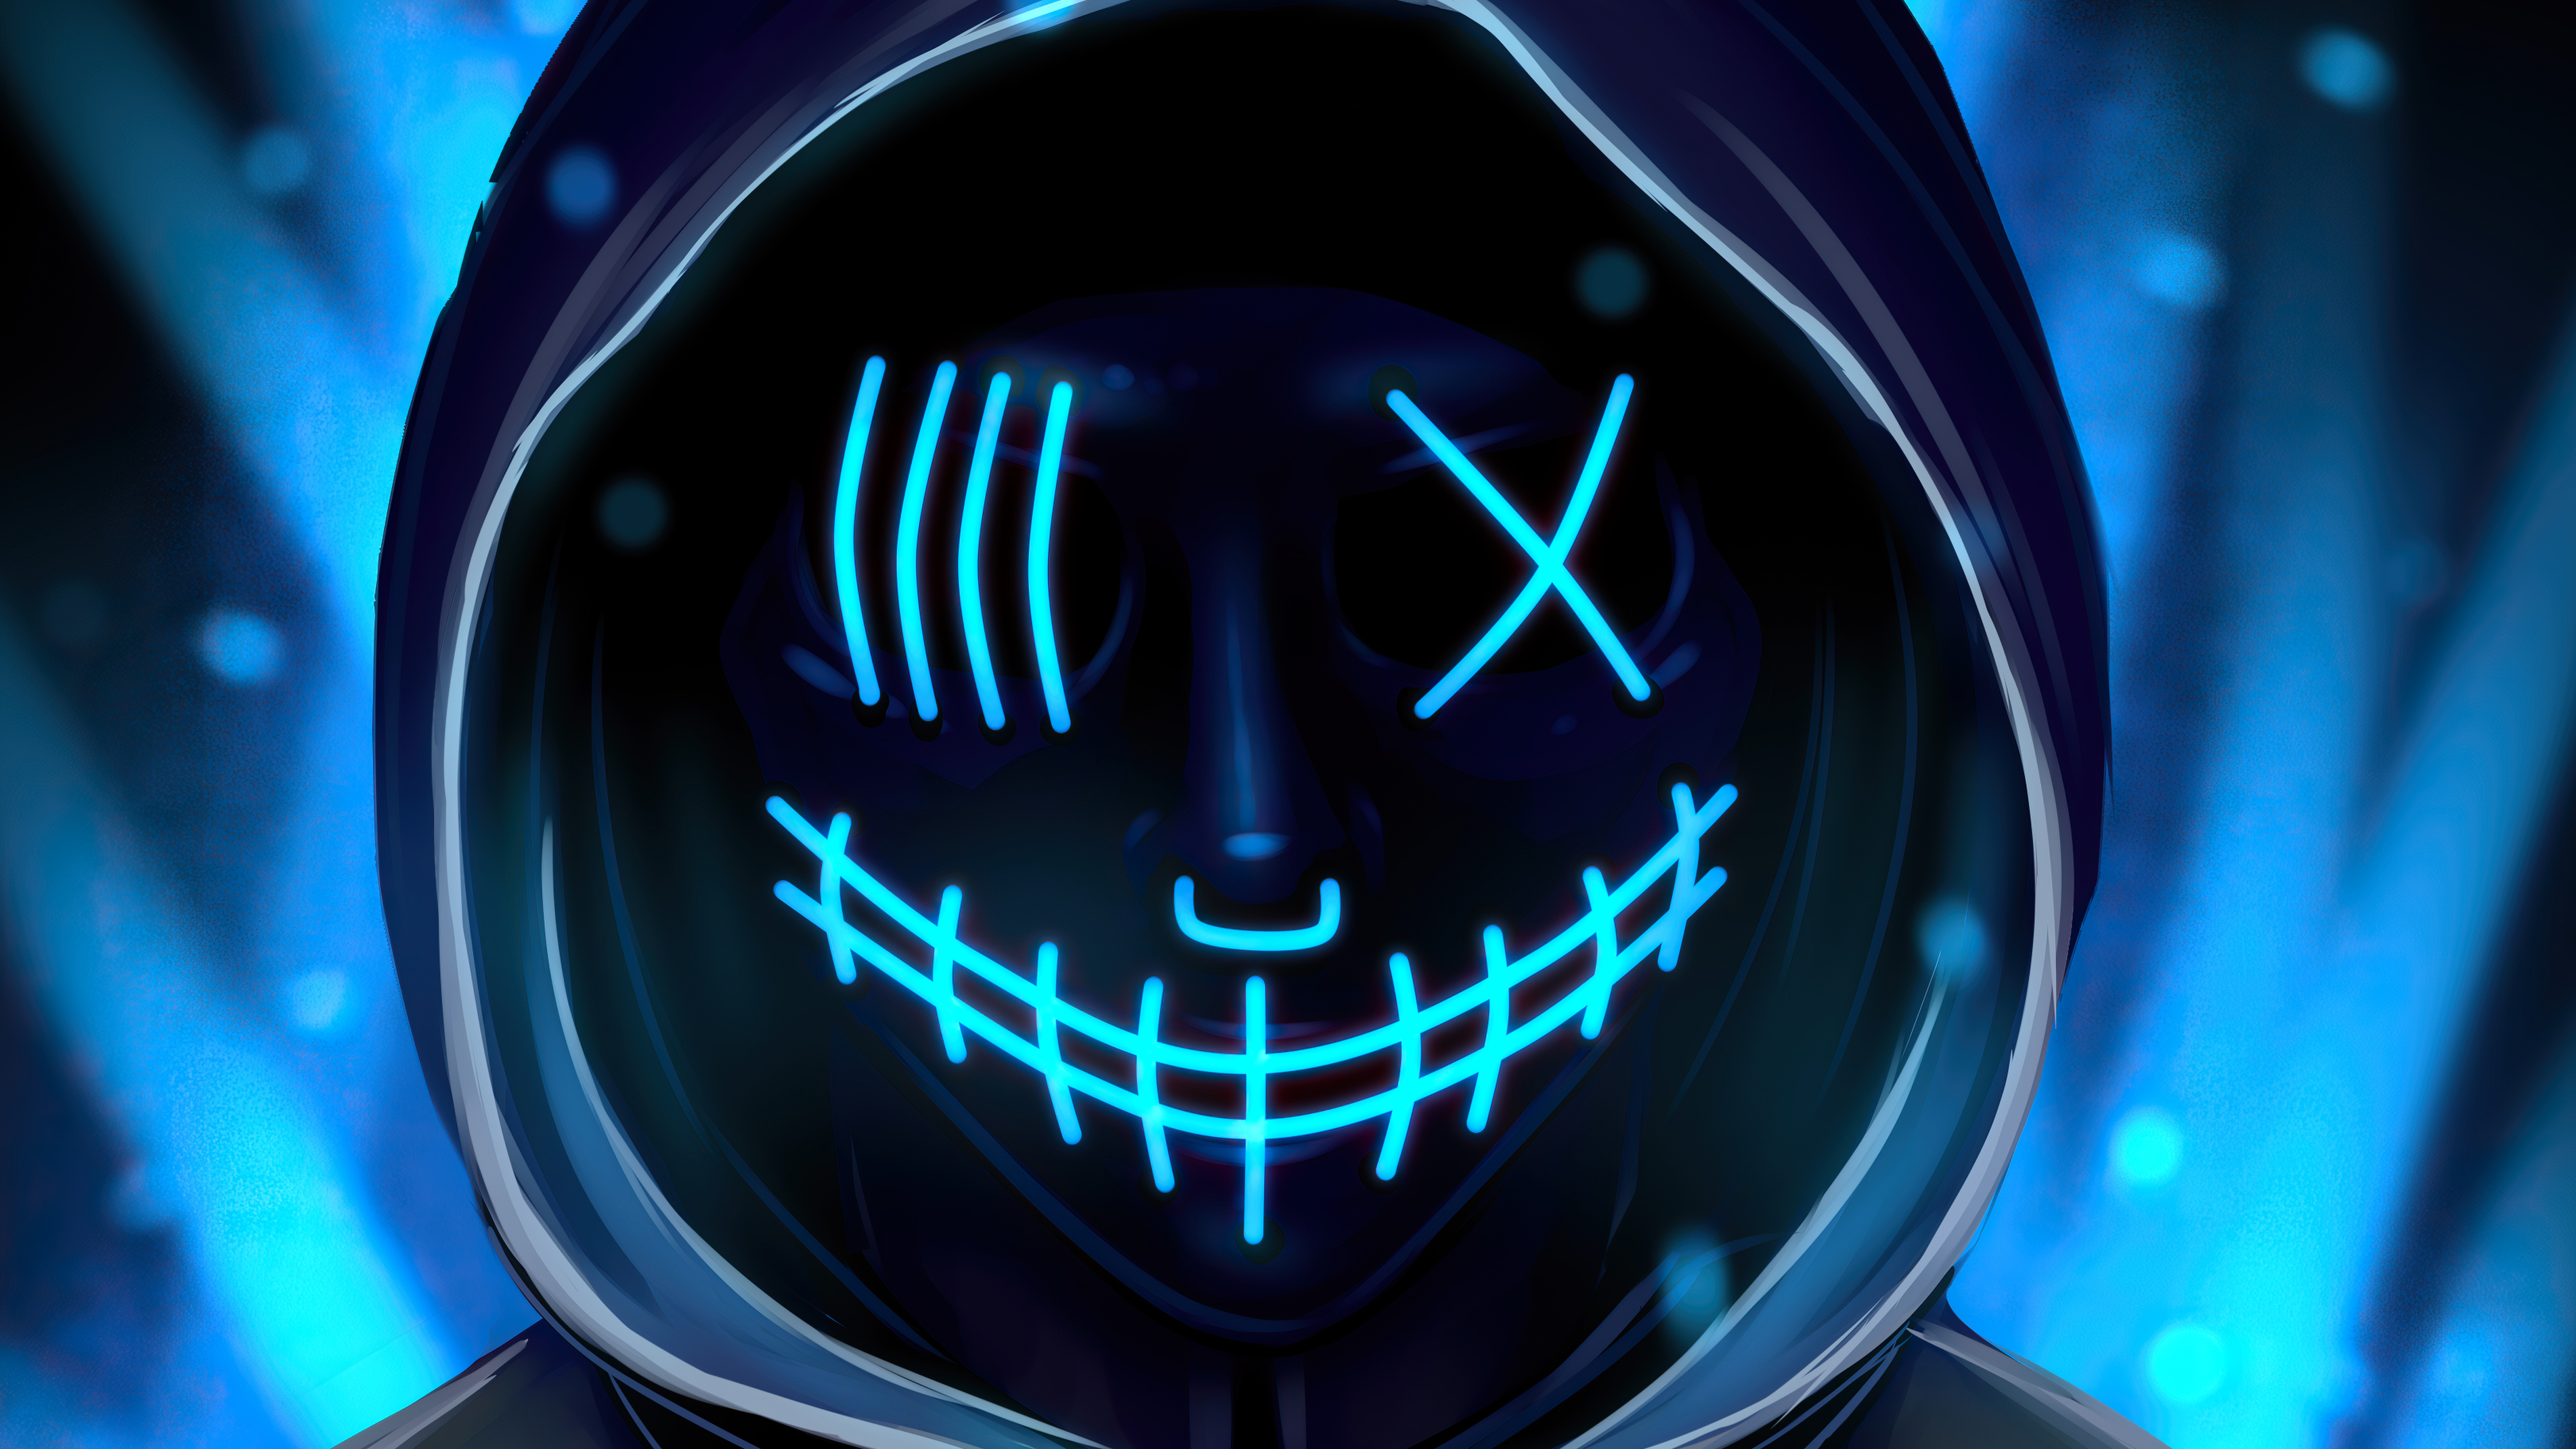 Neon Mask 4k Hd Artist 4k Wallpapers Images Backgrounds Photos And Pictures